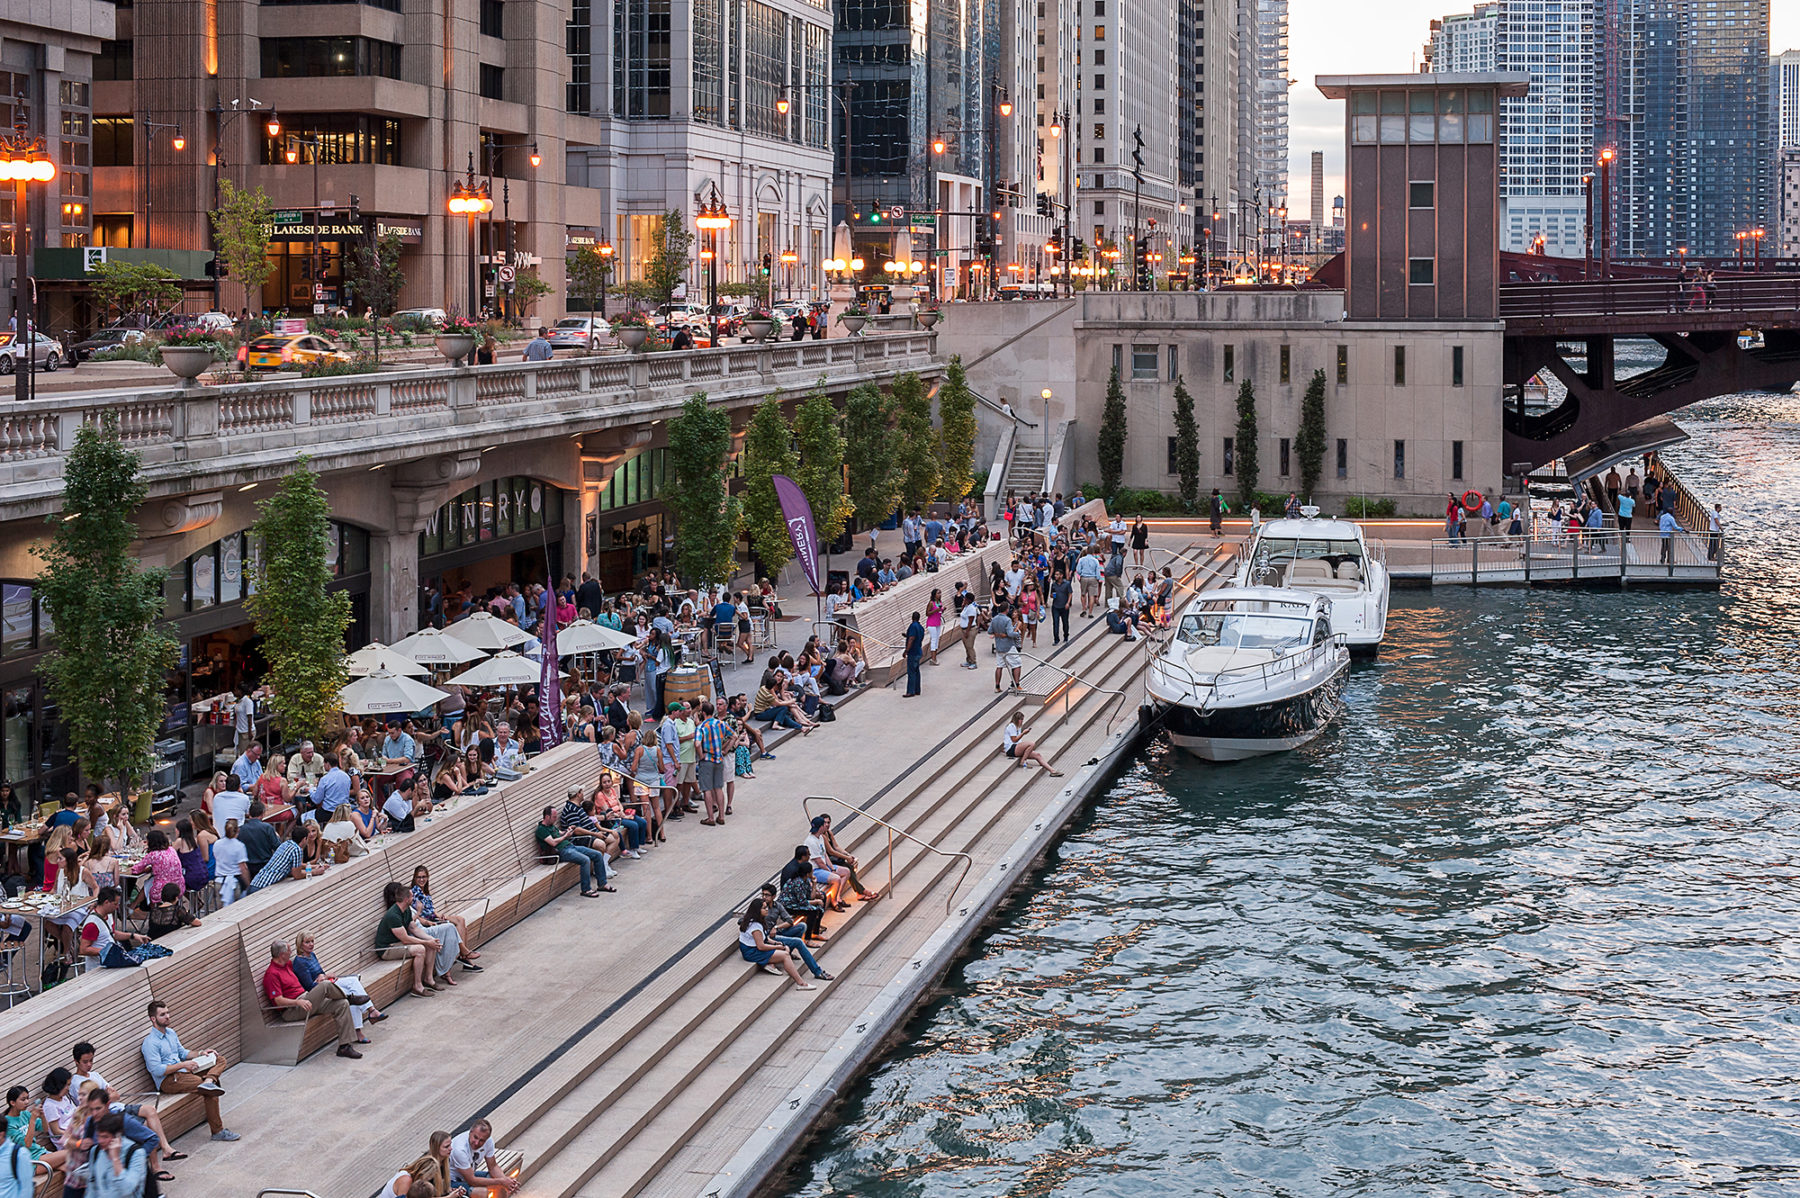 Image of chicago riverwalk from ground level